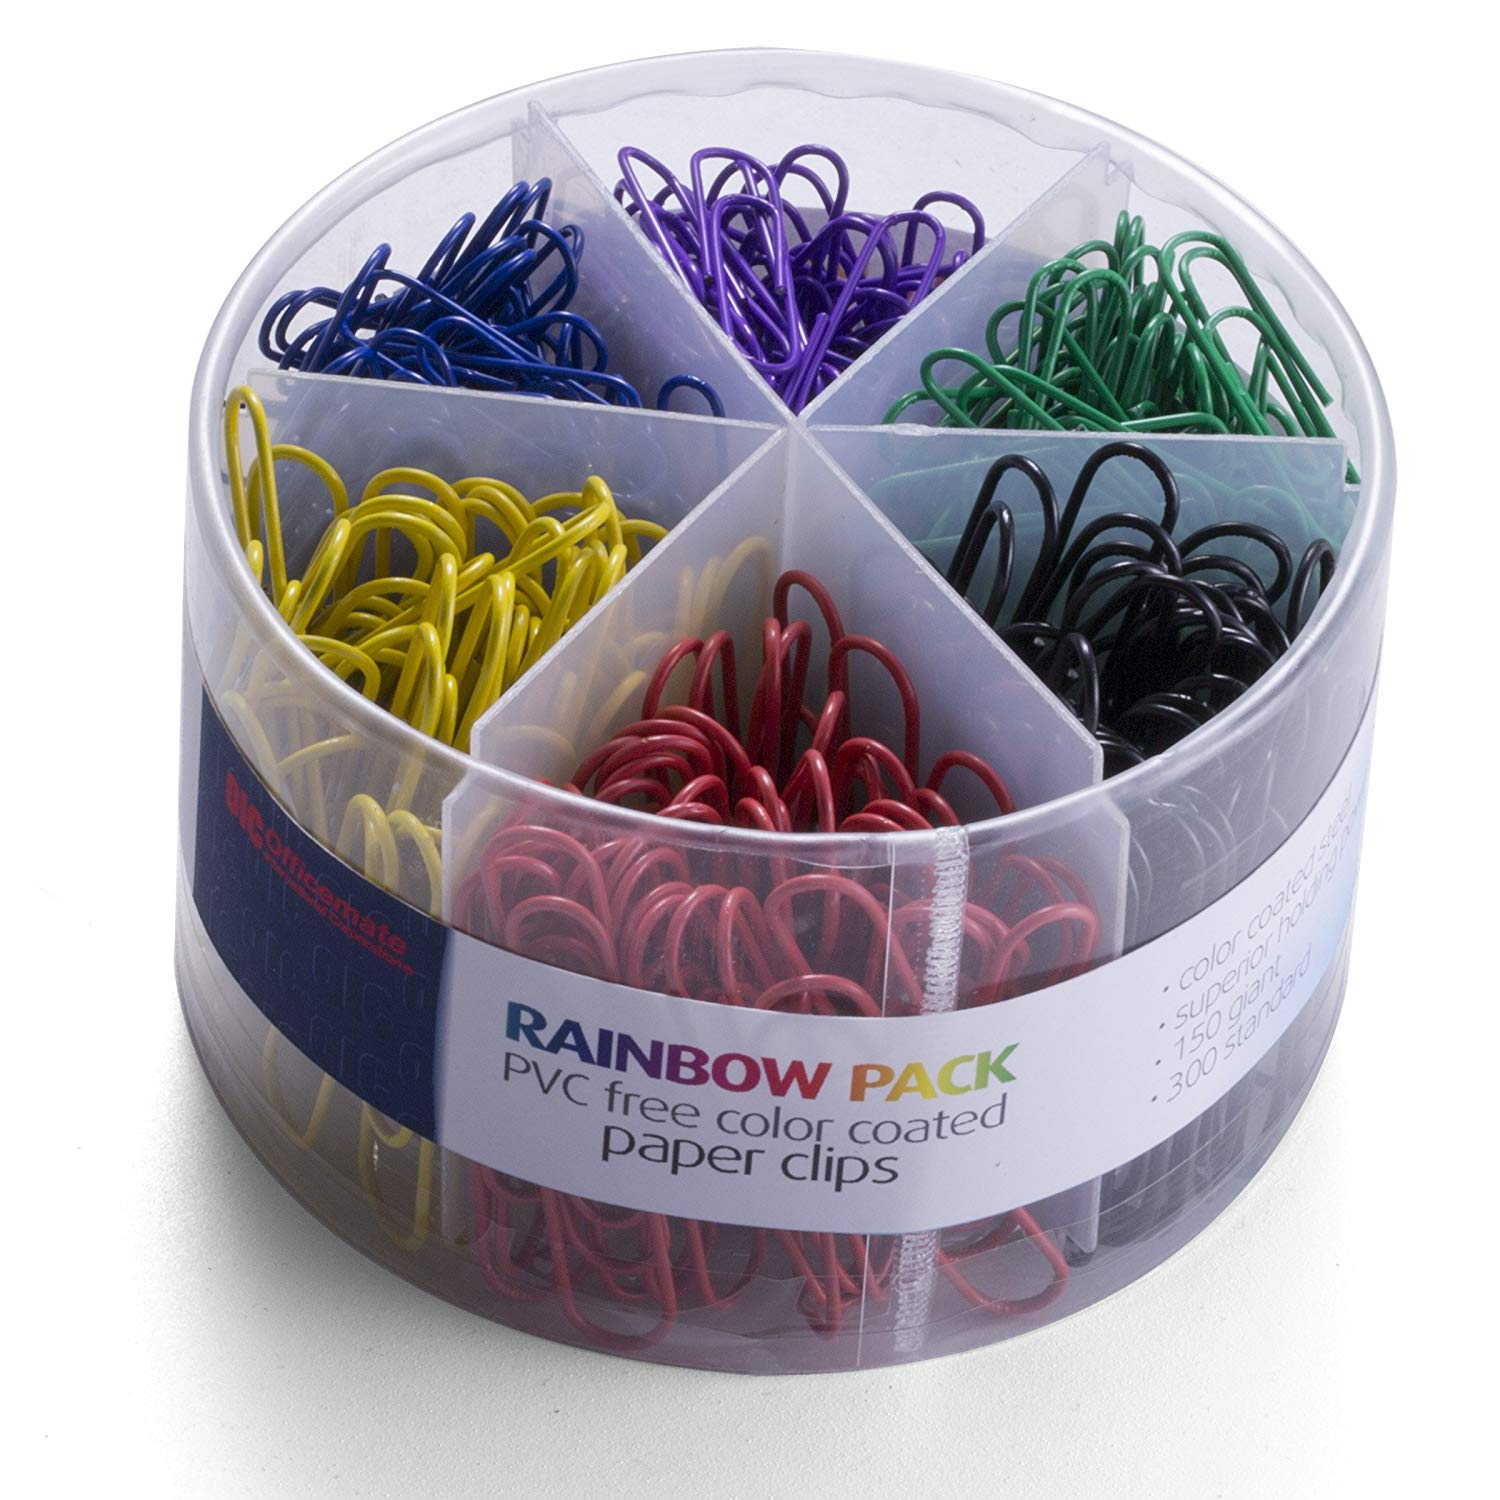 Officemate PVC Free Color Coated Paper Clips - Things You Should Have on Your Office Desk